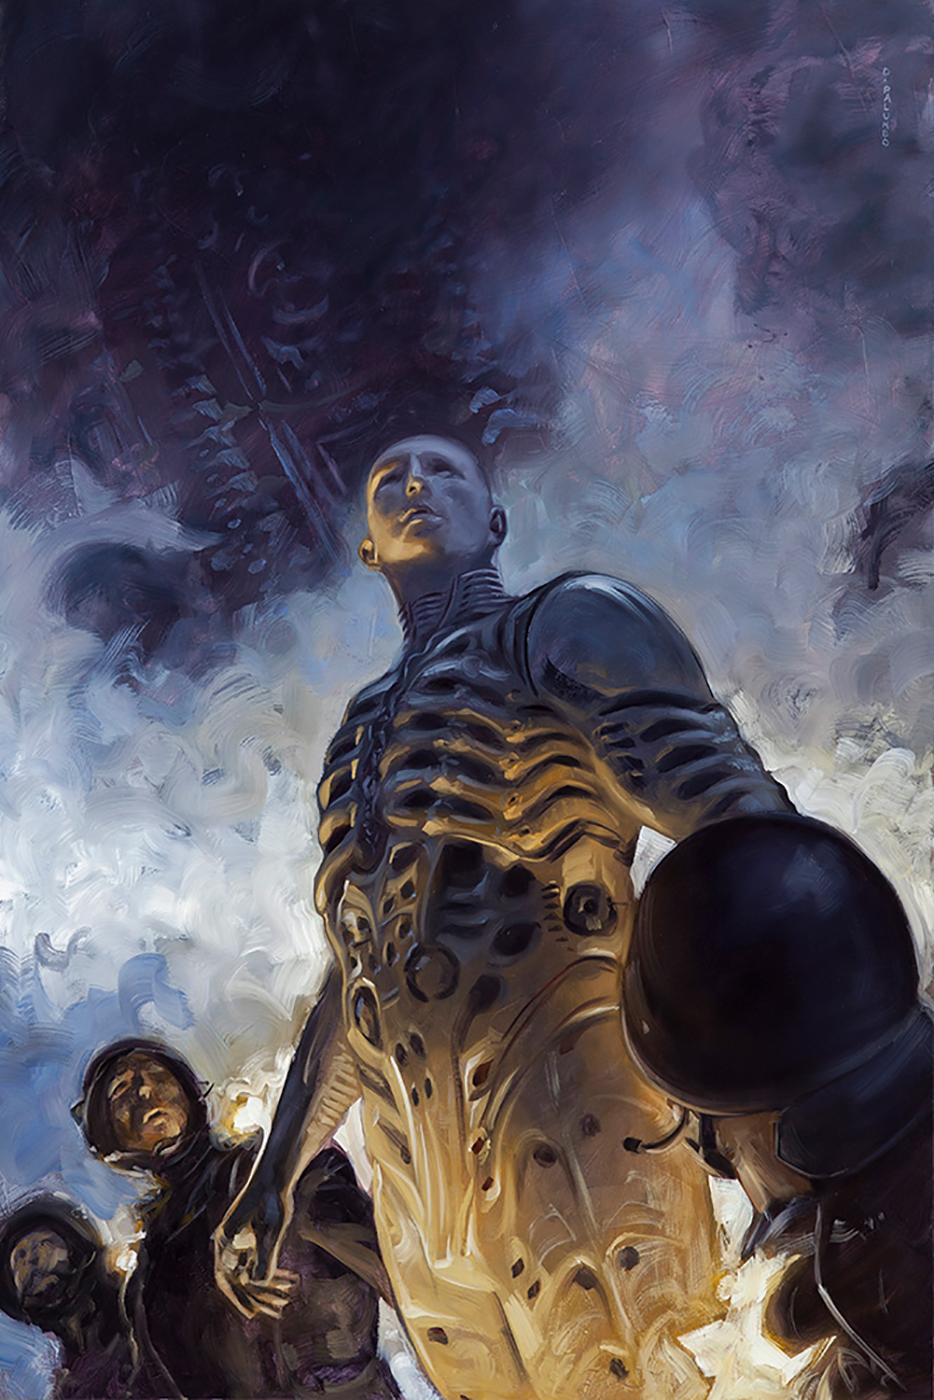 Richard Solomon - David-Palumbo-197-Prometheus-Life-and-Death